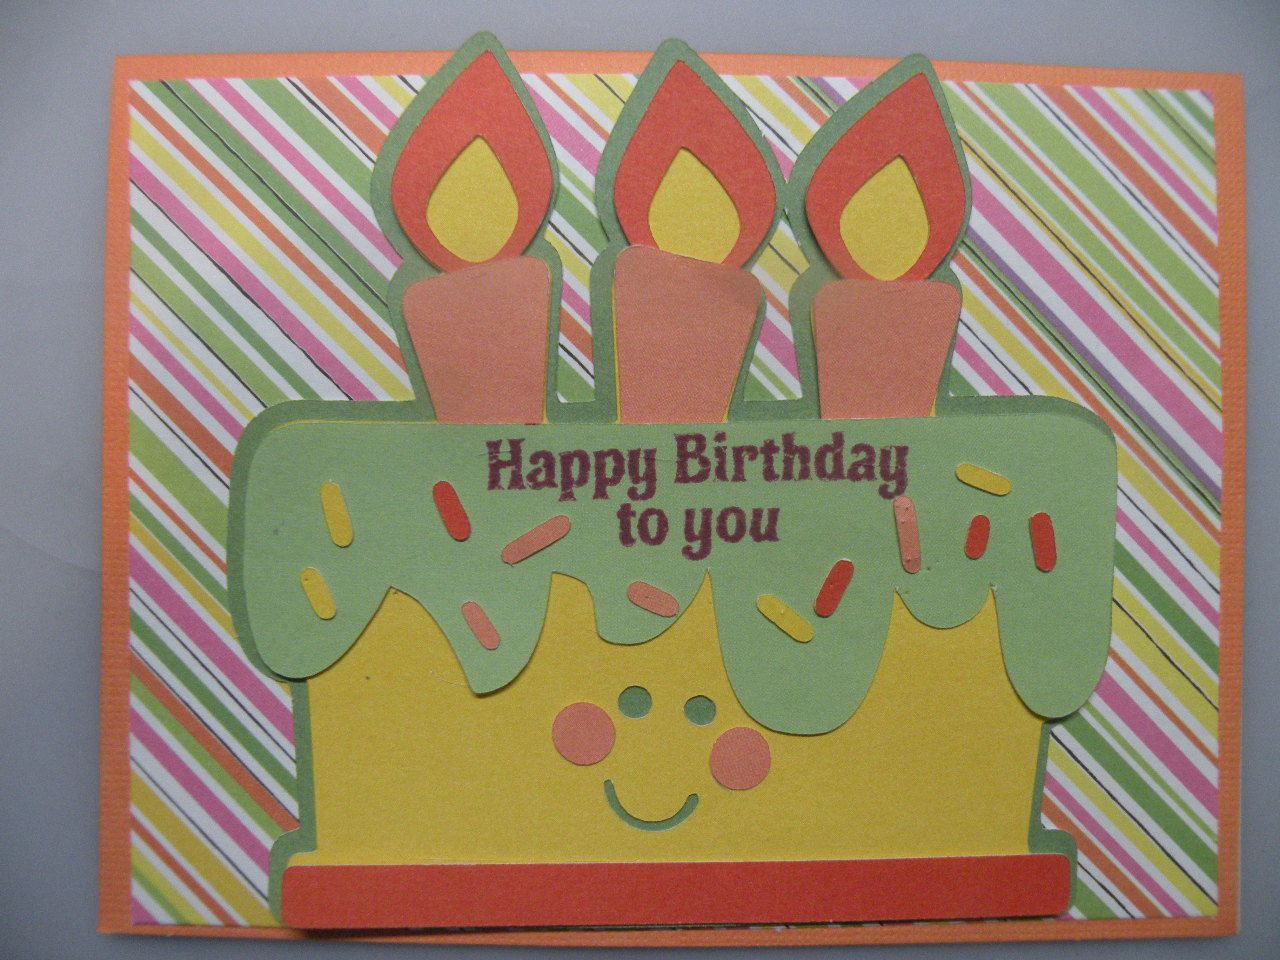 Easy to Make Homemade Birthday Card with a Cricut – How to Make an Birthday Card